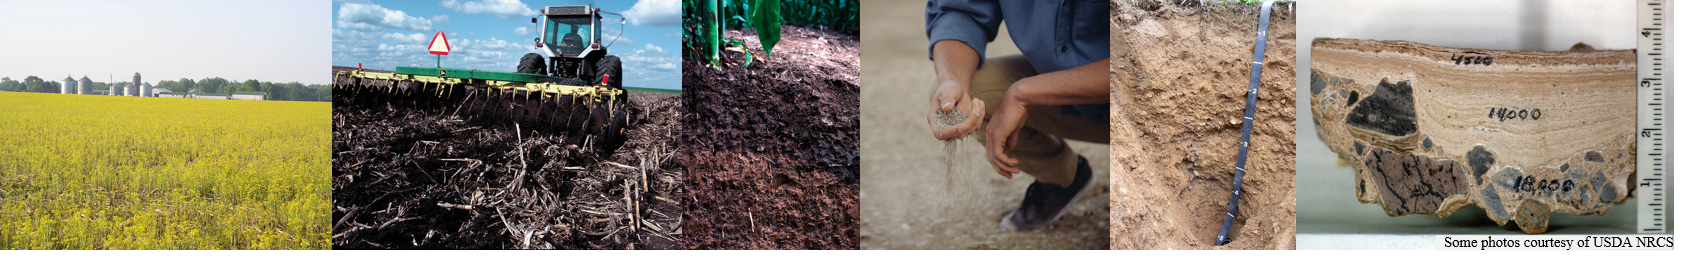 Image banner of different soils and activities related to soil science